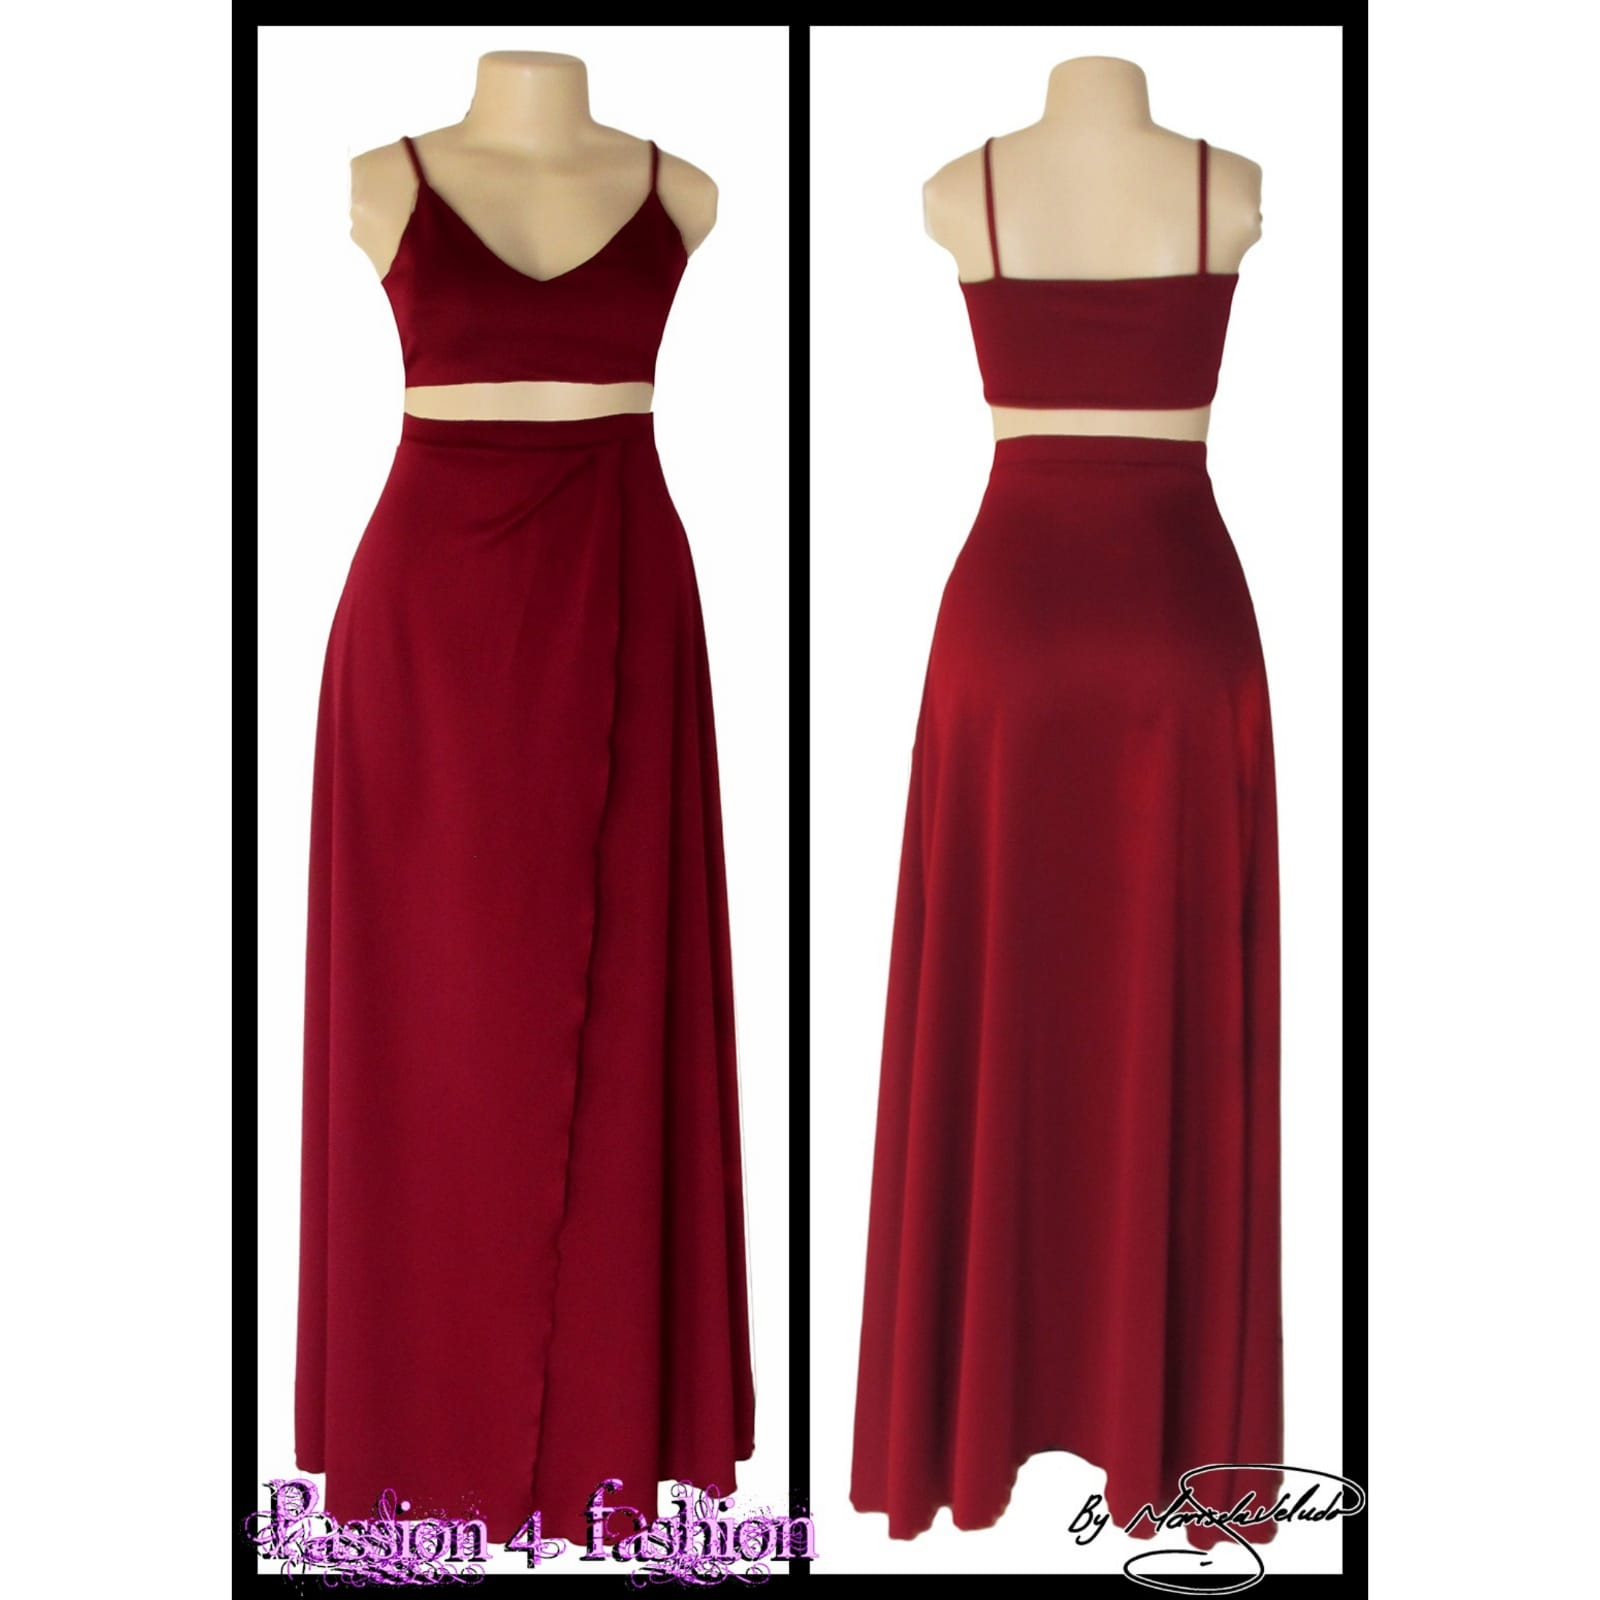 Maroon 2 piece smart casual wear 2 maroon 2 piece smart casual wear with a crop top and a long skirt with a crossed slit.